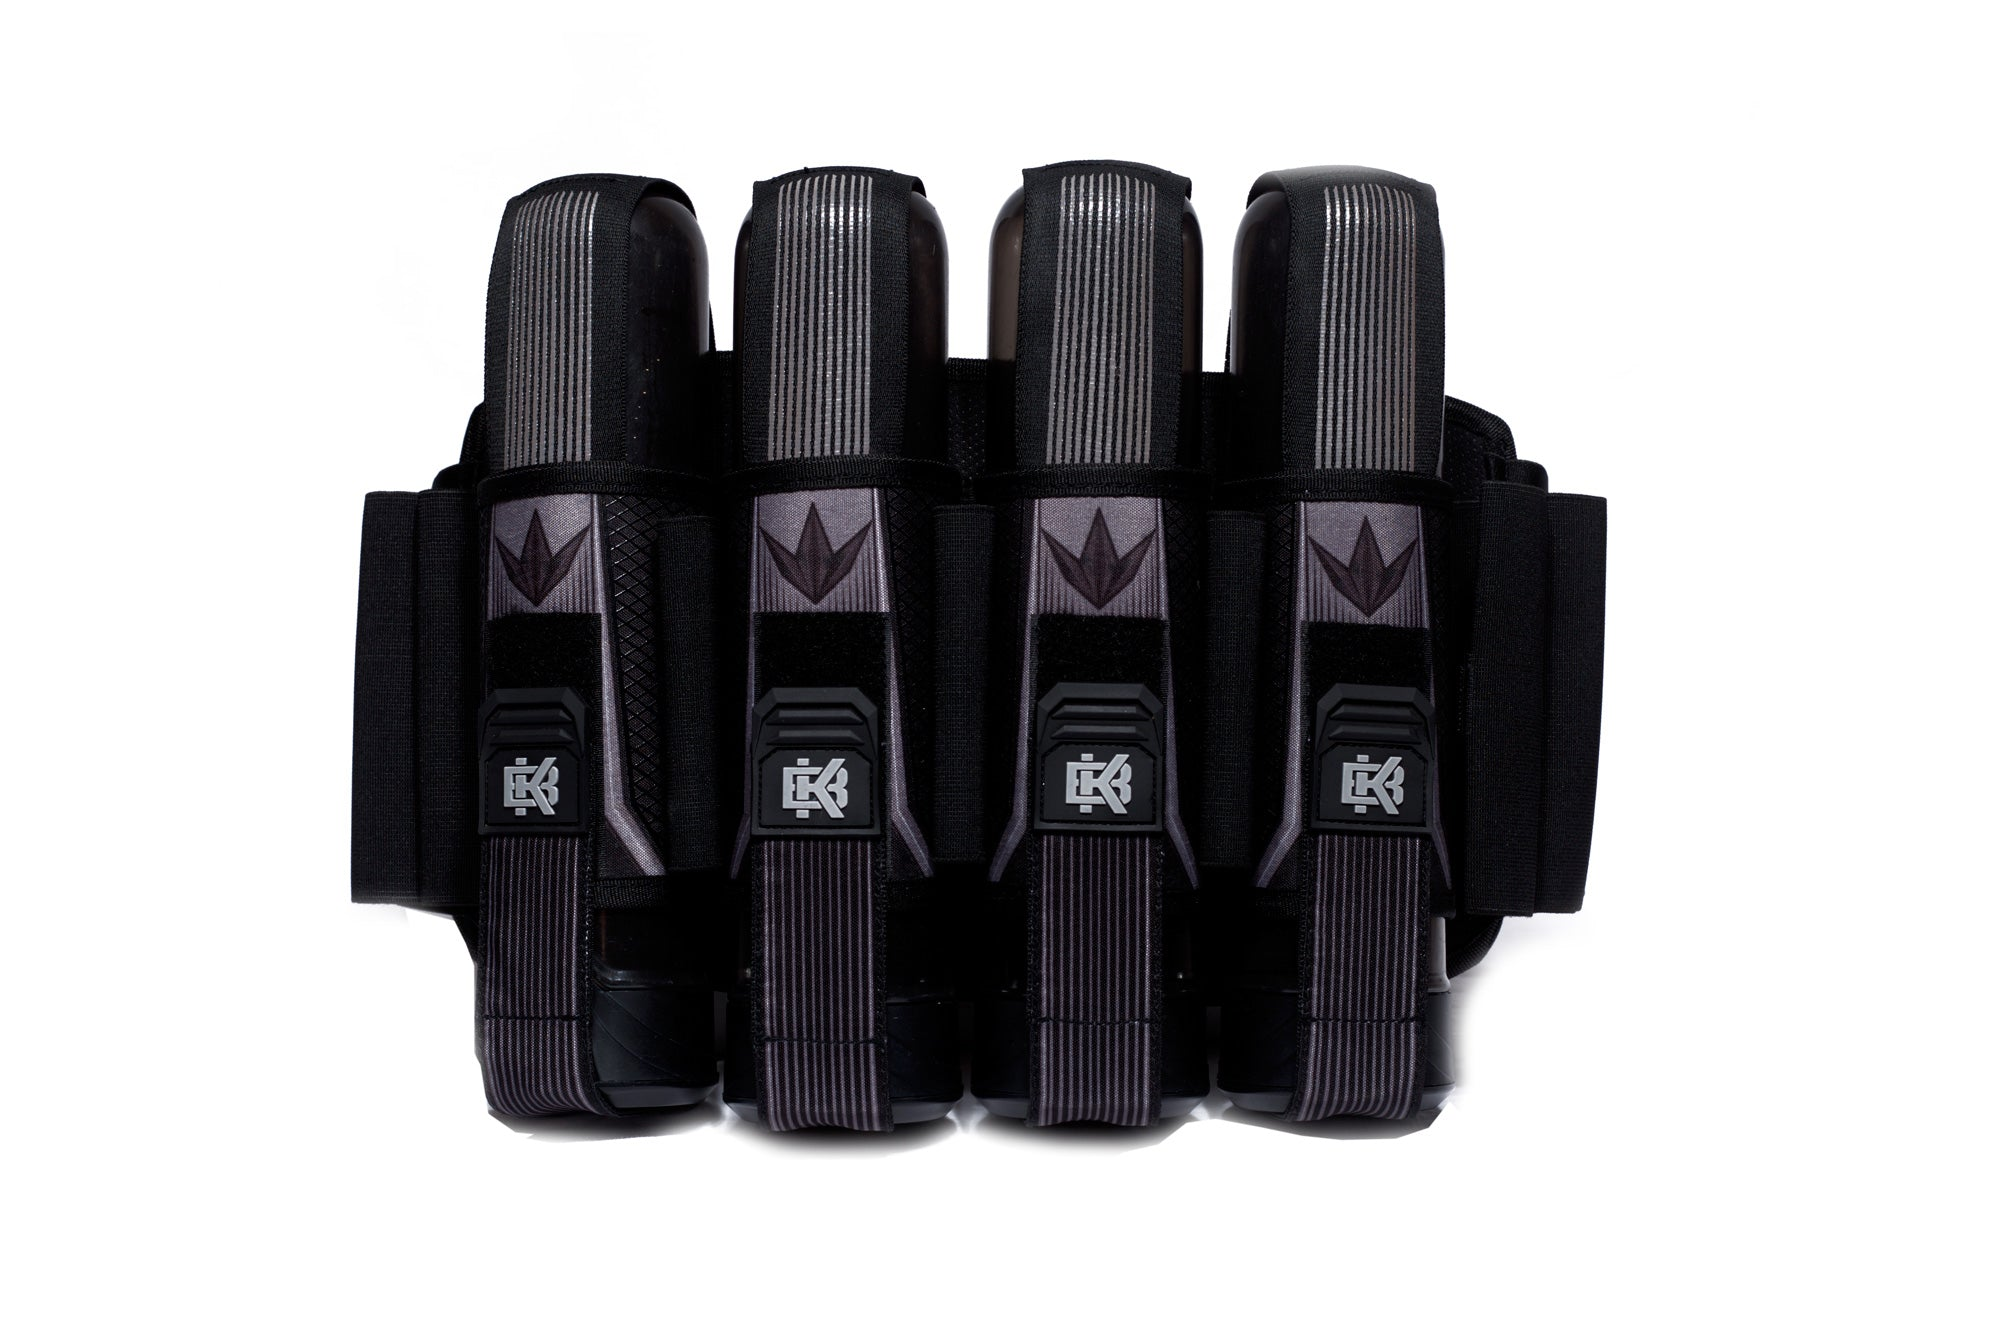 BNKR Bunker Kings Strapped Pod Pack - Stealth Gray 4+7